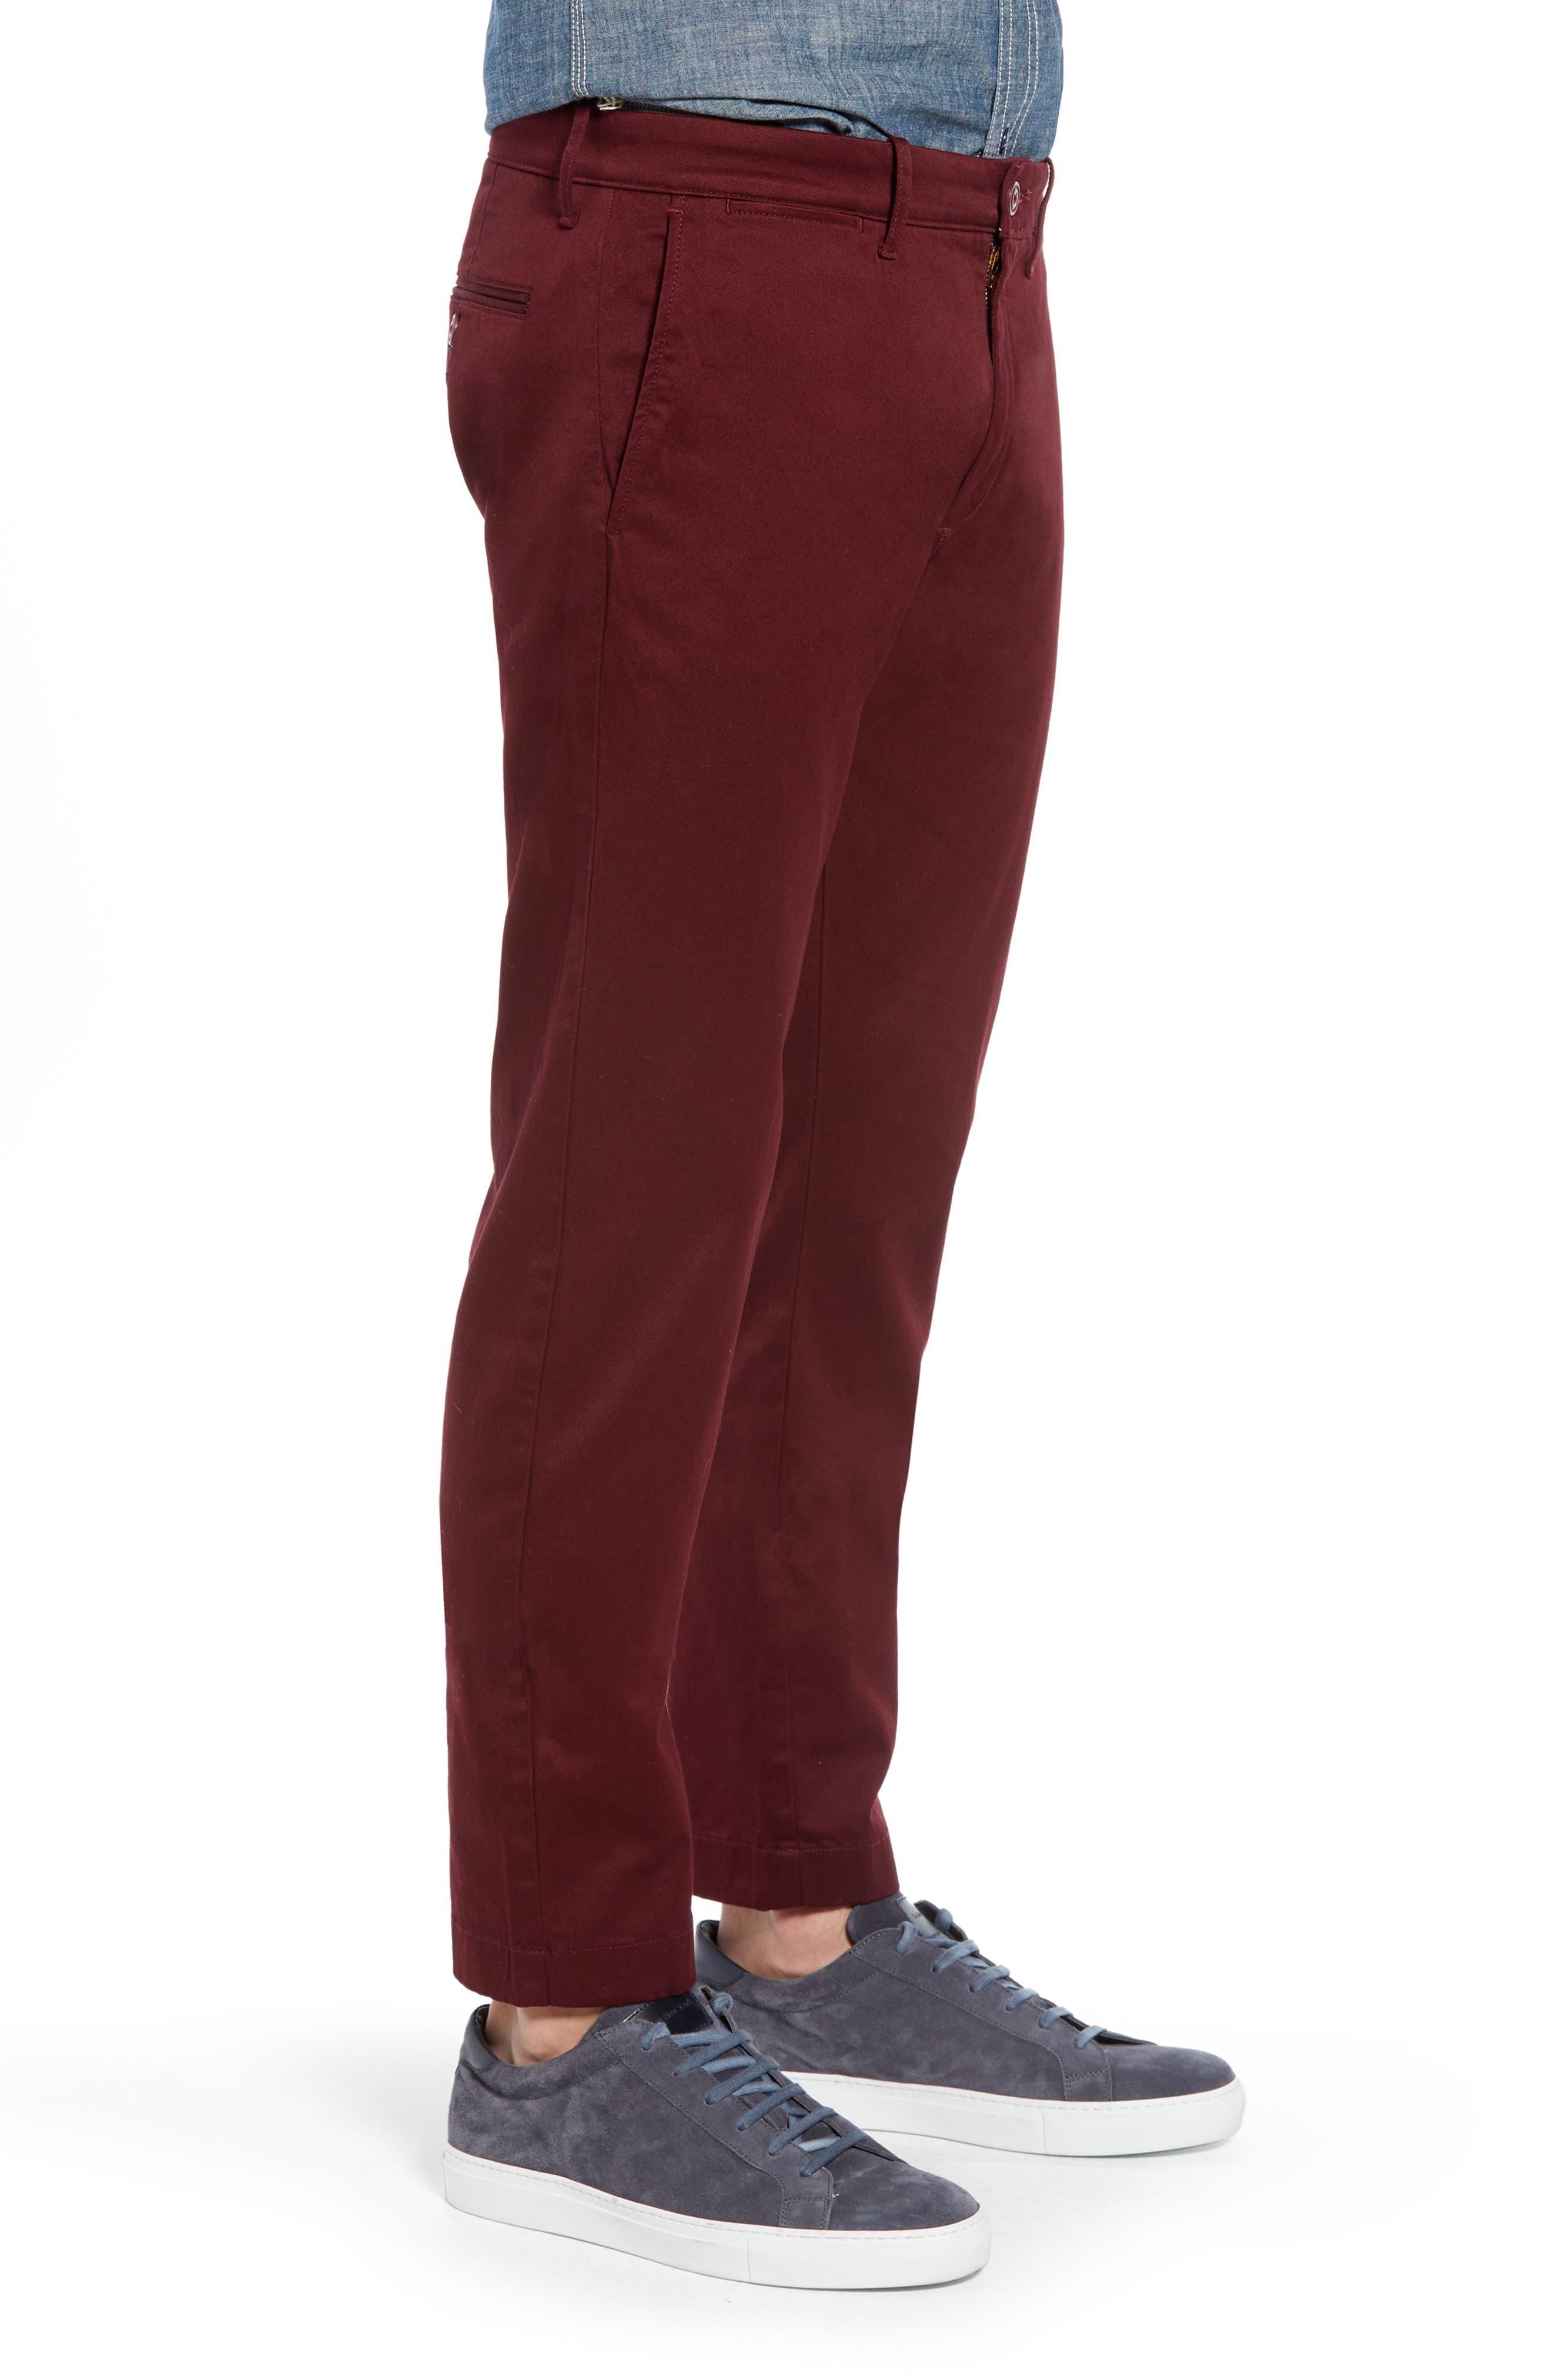 484 Slim Fit Stretch Chino Pants,                             Alternate thumbnail 34, color,